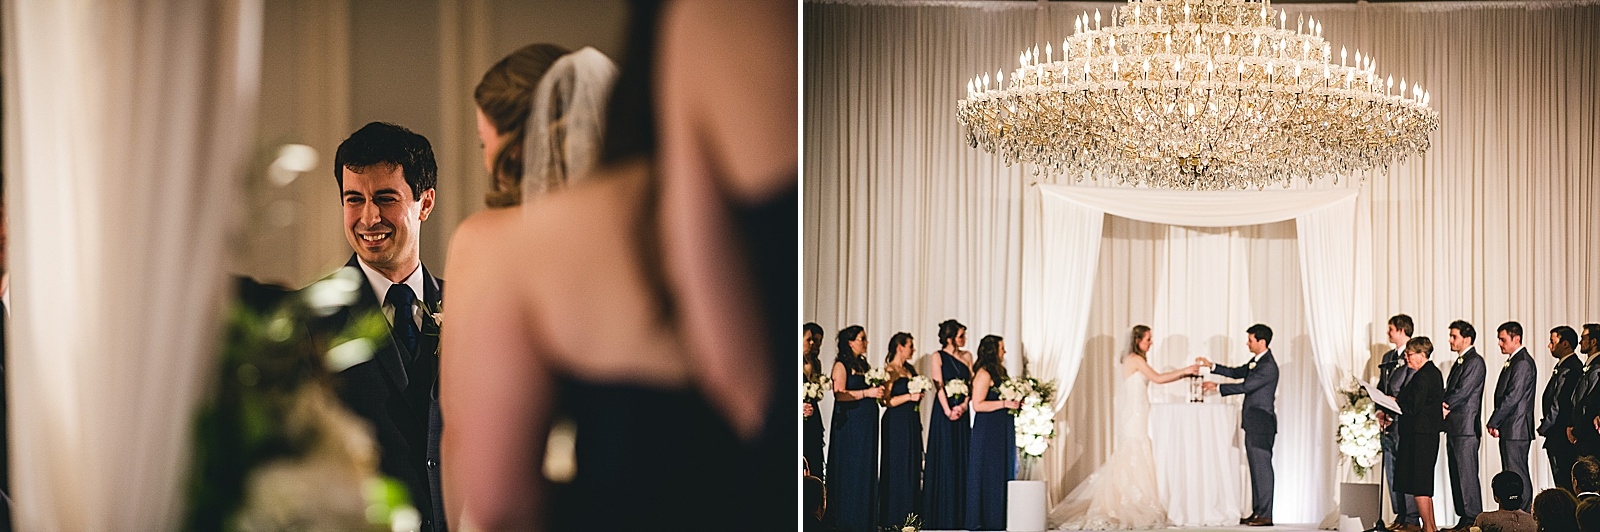 28 wedding ceremony photos - Oakbrook Wedding Photos at Drury Lane // Marina + Joe